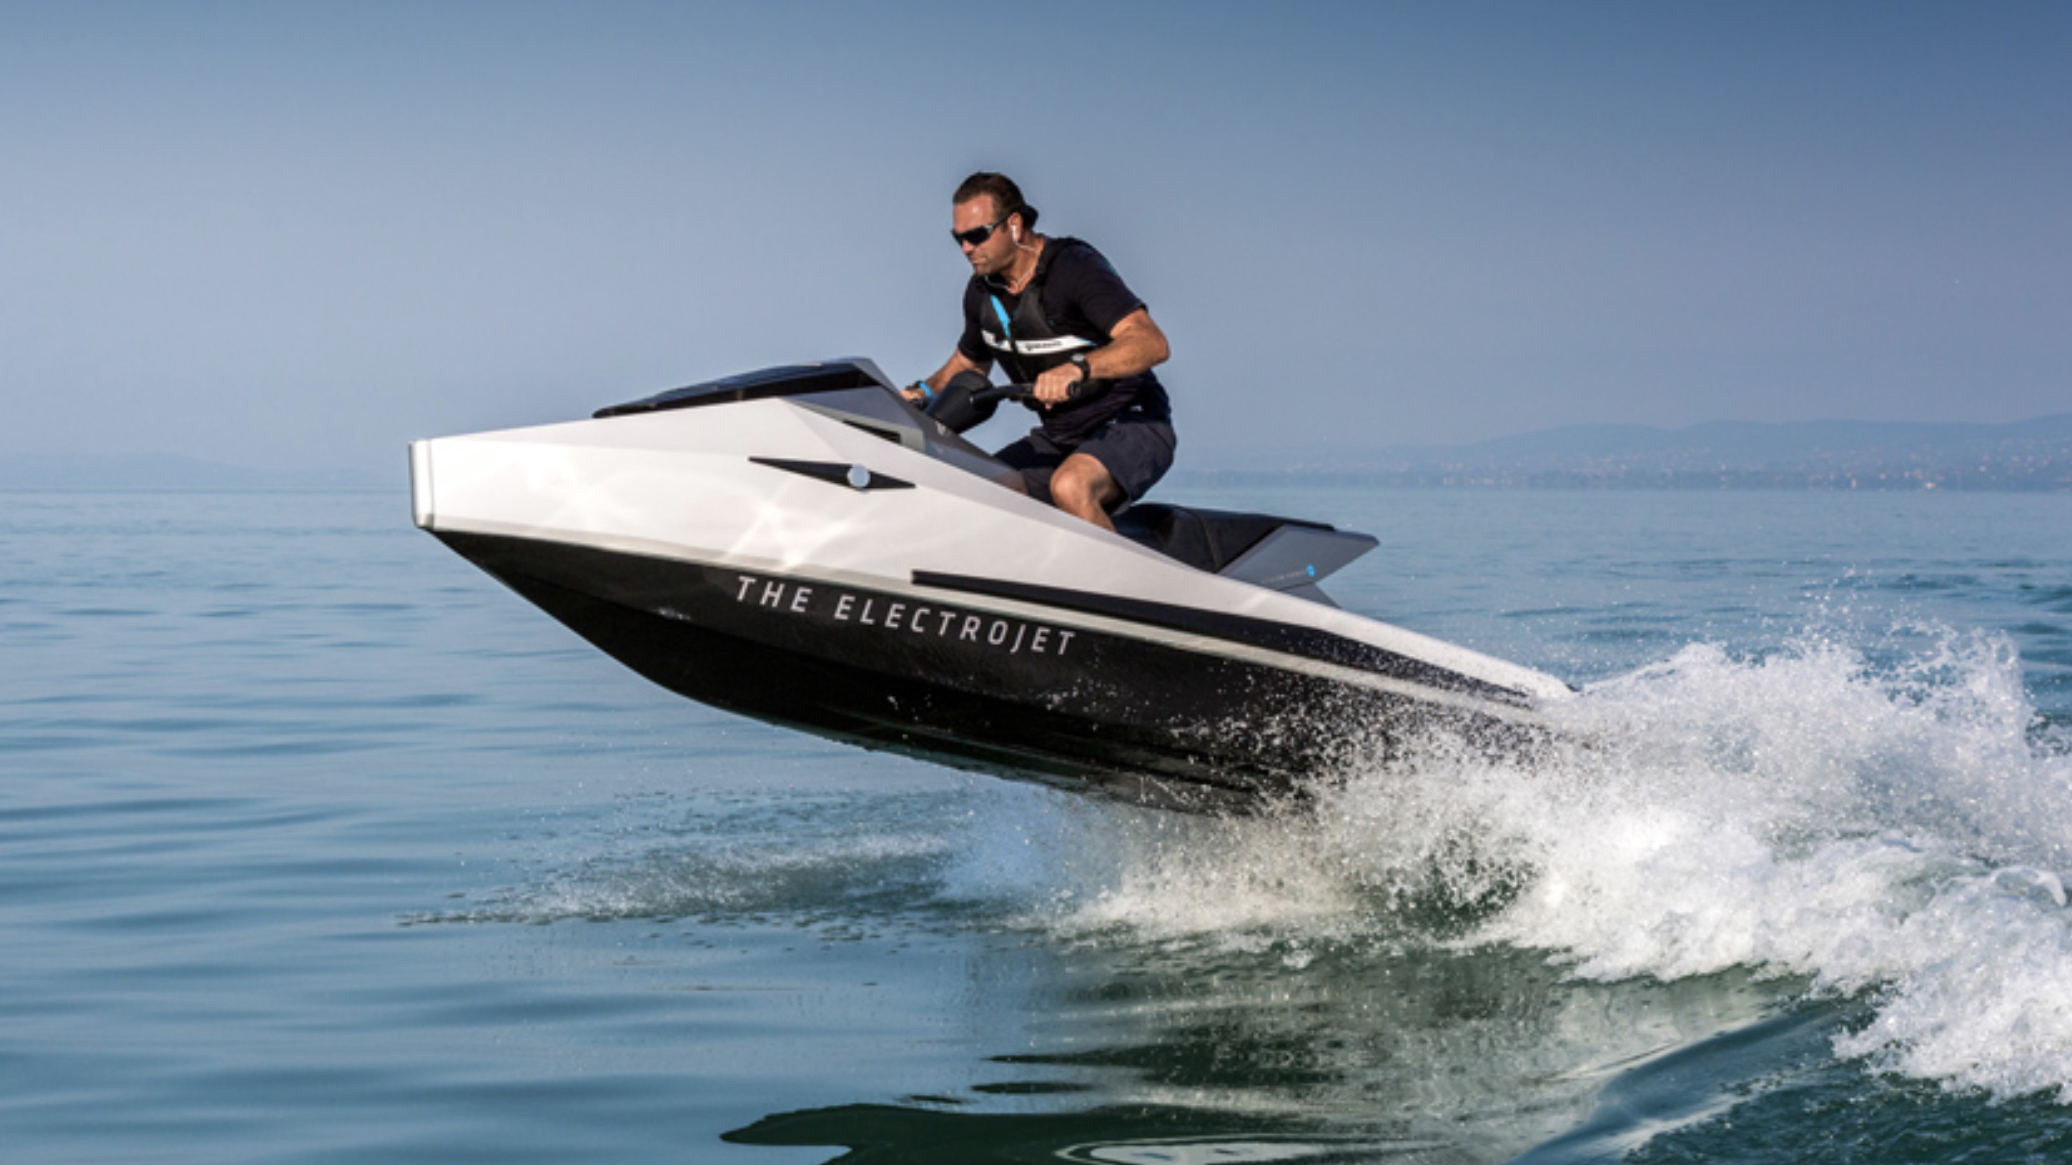 Electric Jet Ski: Australian company plans to swap old engines with modern tech